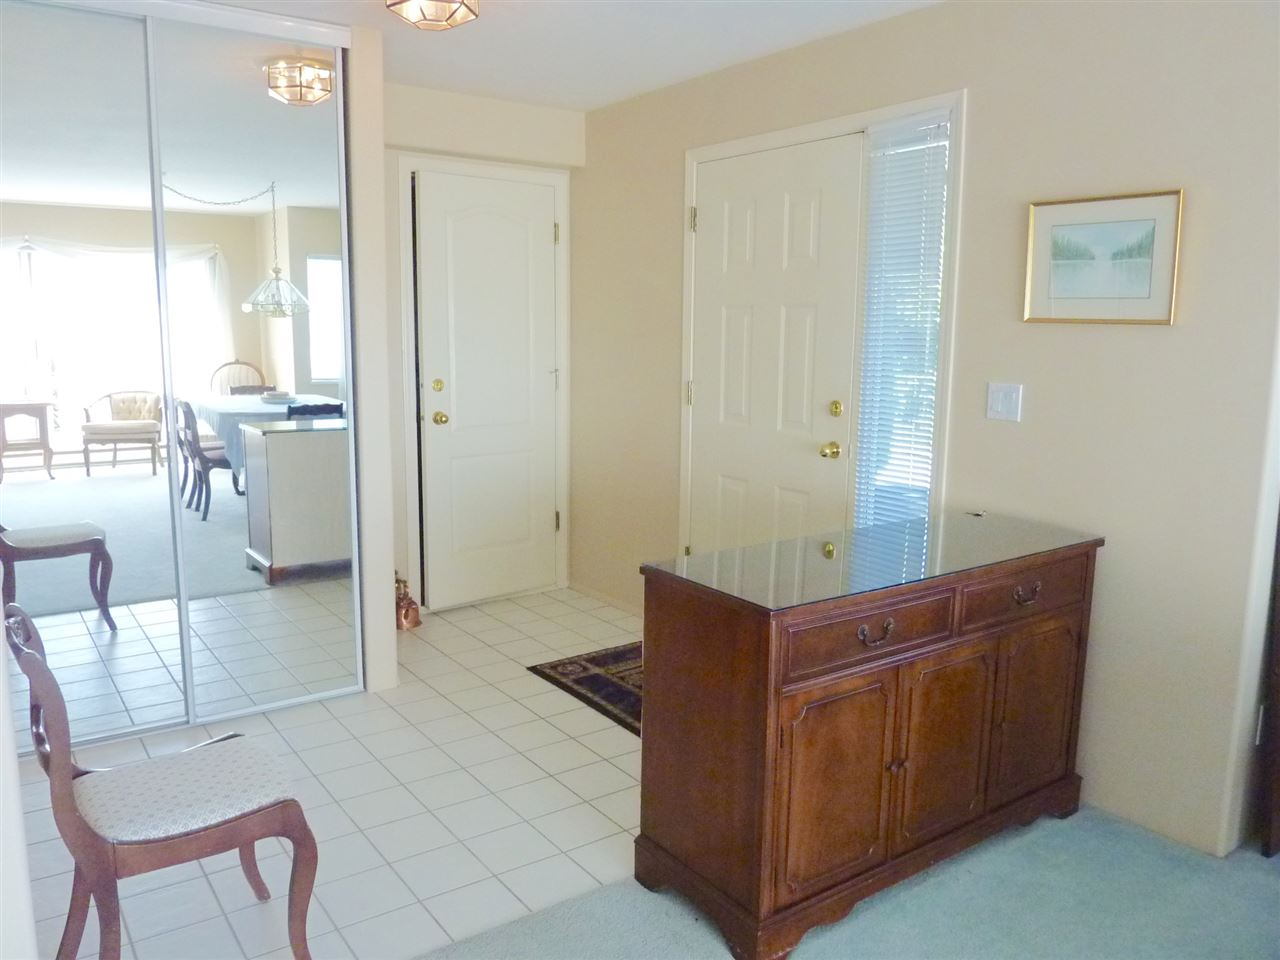 Large, accommodating foyer